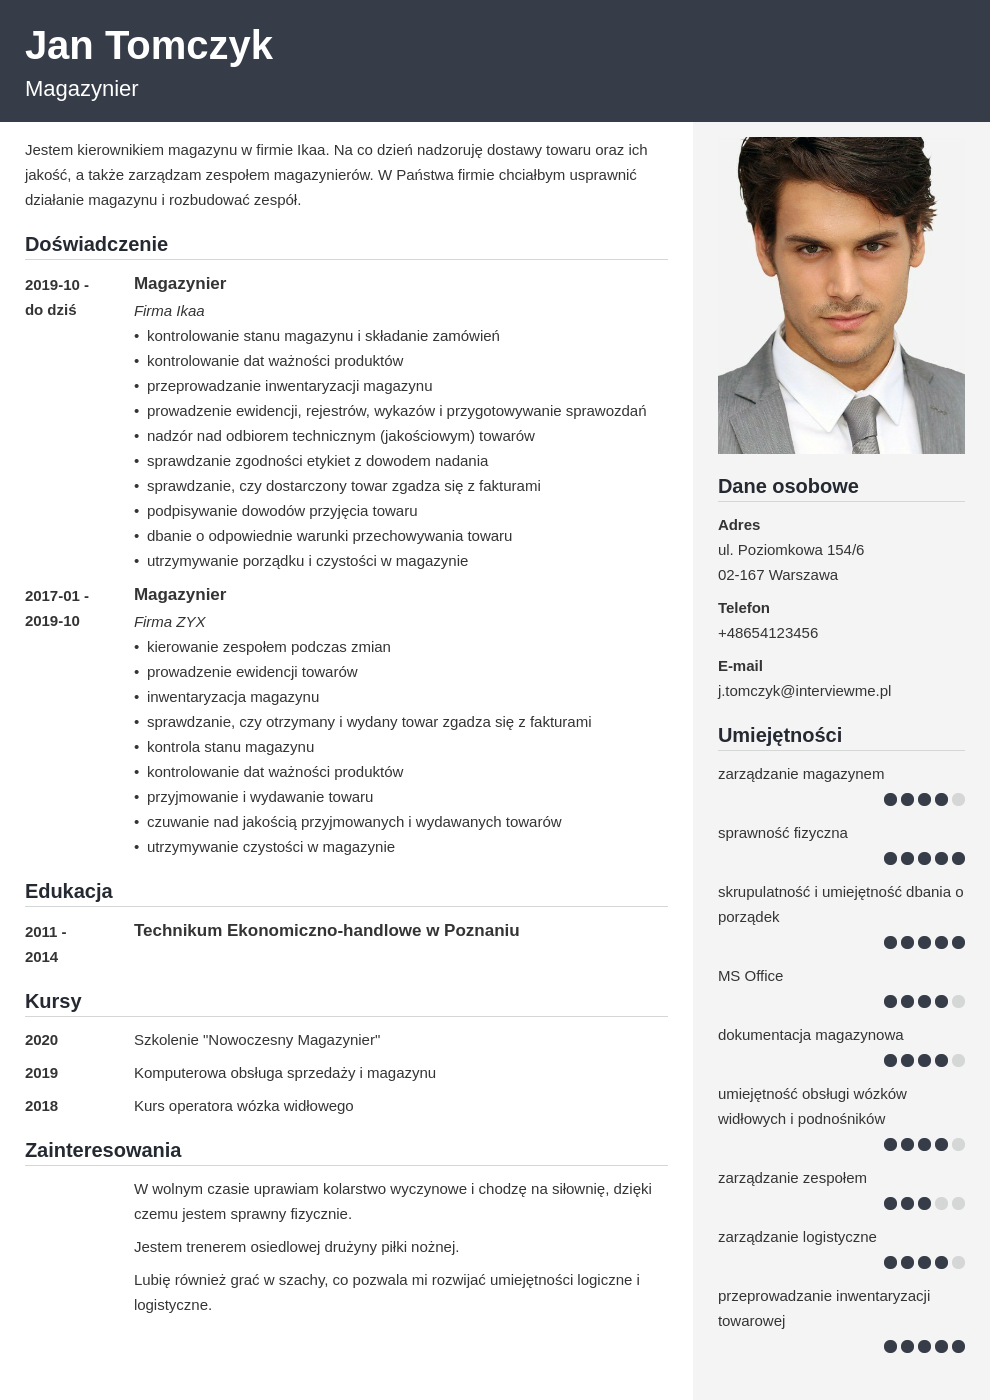 curriculum vitae 8 zbednych elementow template cubic